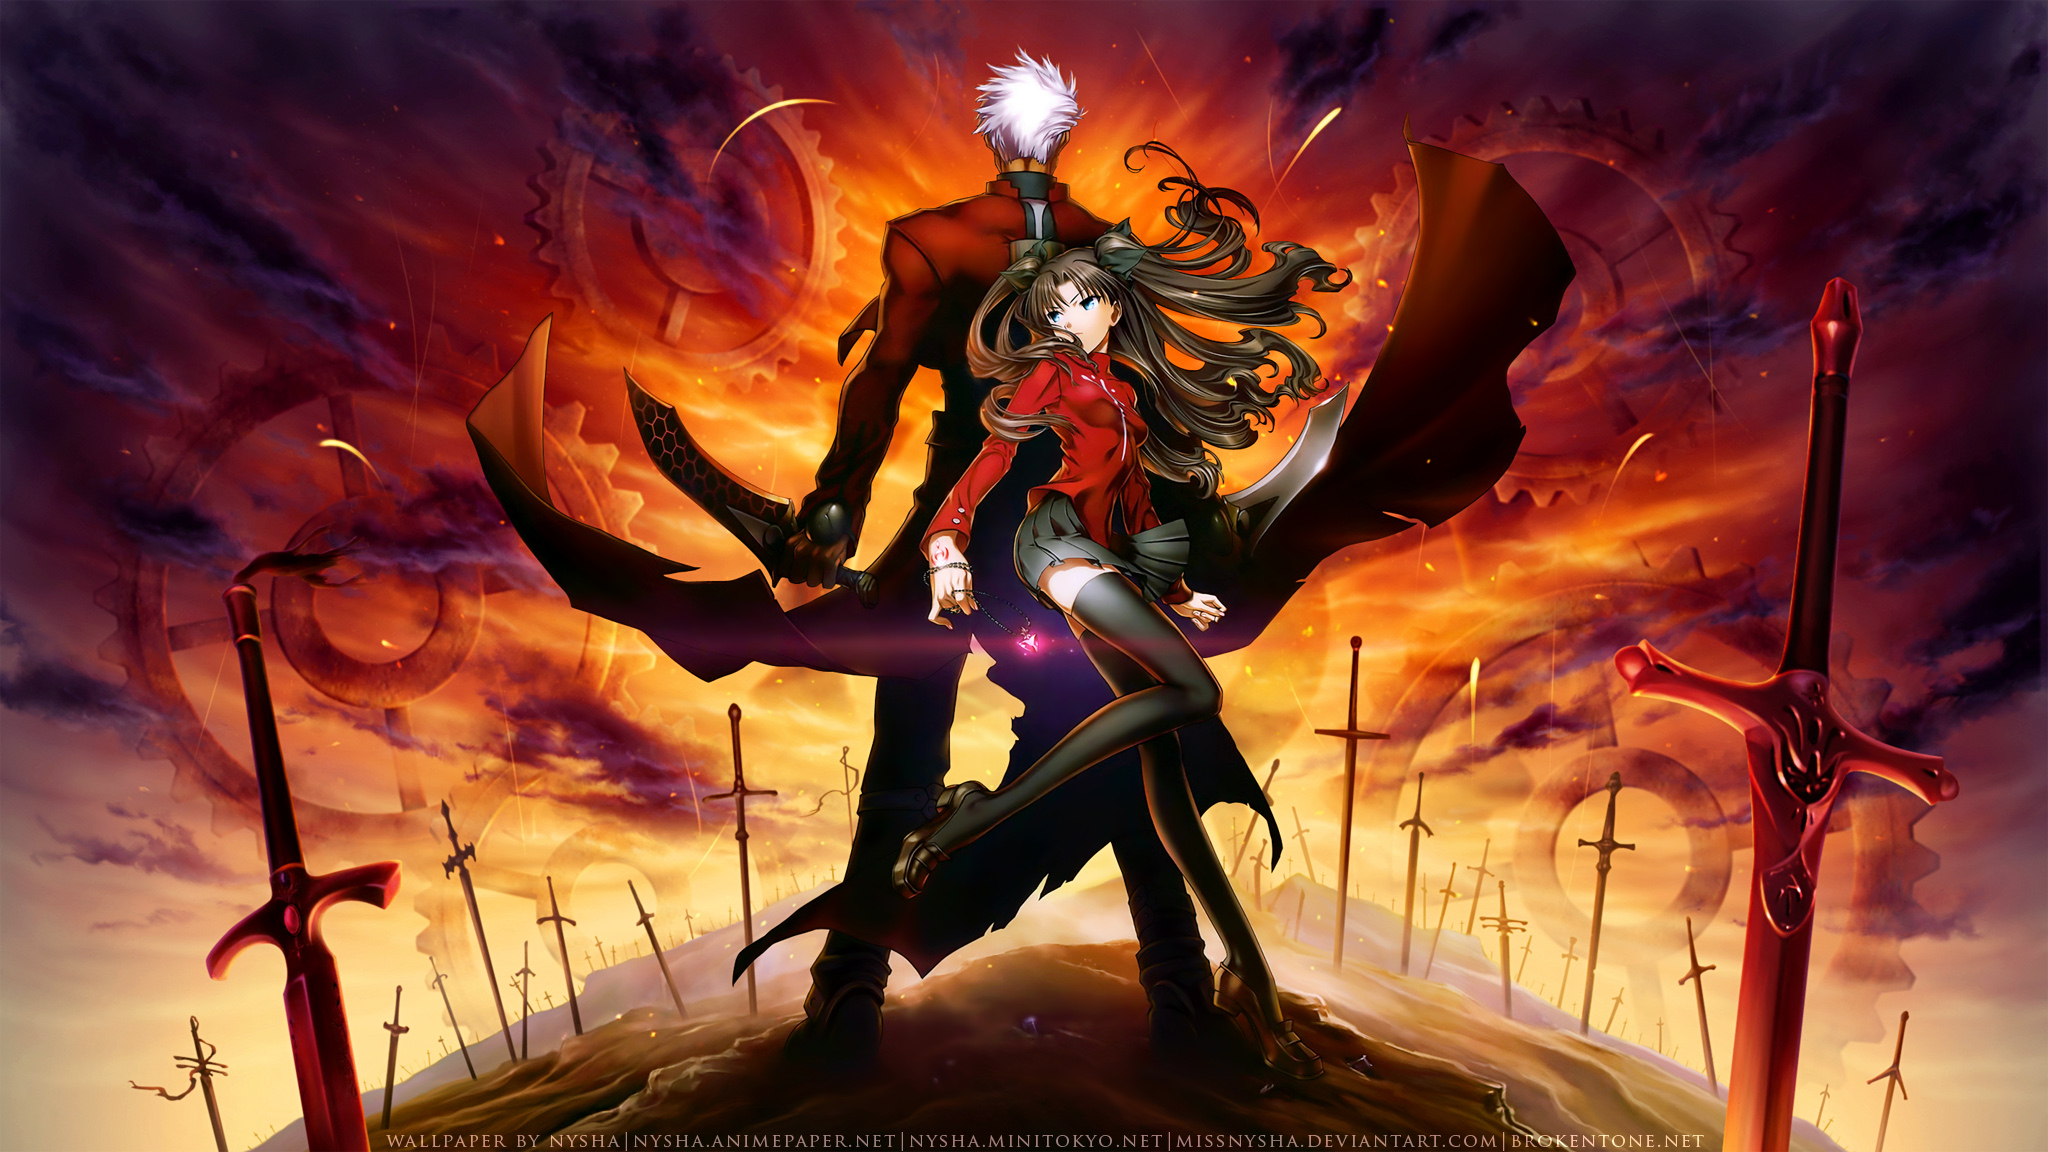 Archer fate stay night missnysha tohsaka rin unlimited blade works watermark wallpaper - Fate stay night wallpaper ...